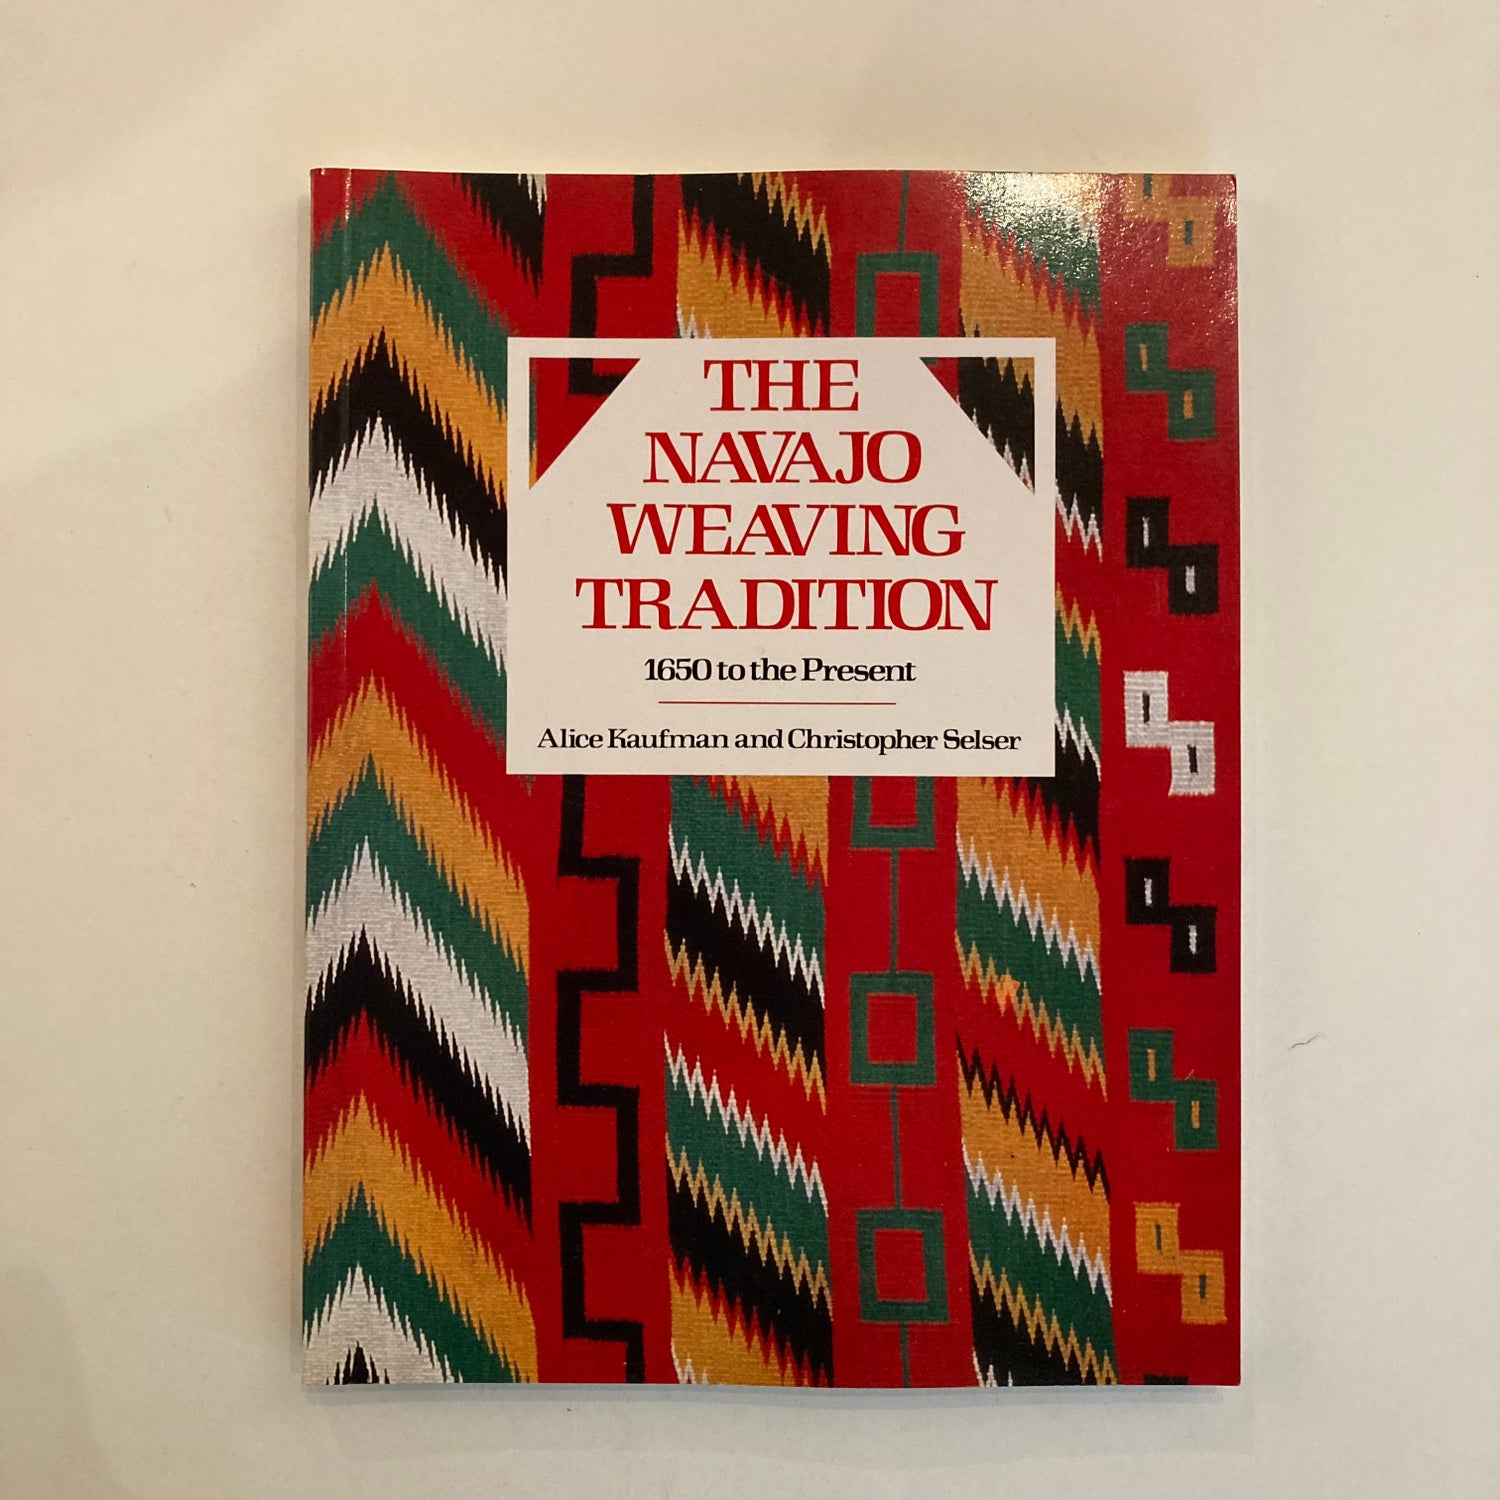 Image of The Navajo Weaving Tradition: 1650 to the Present